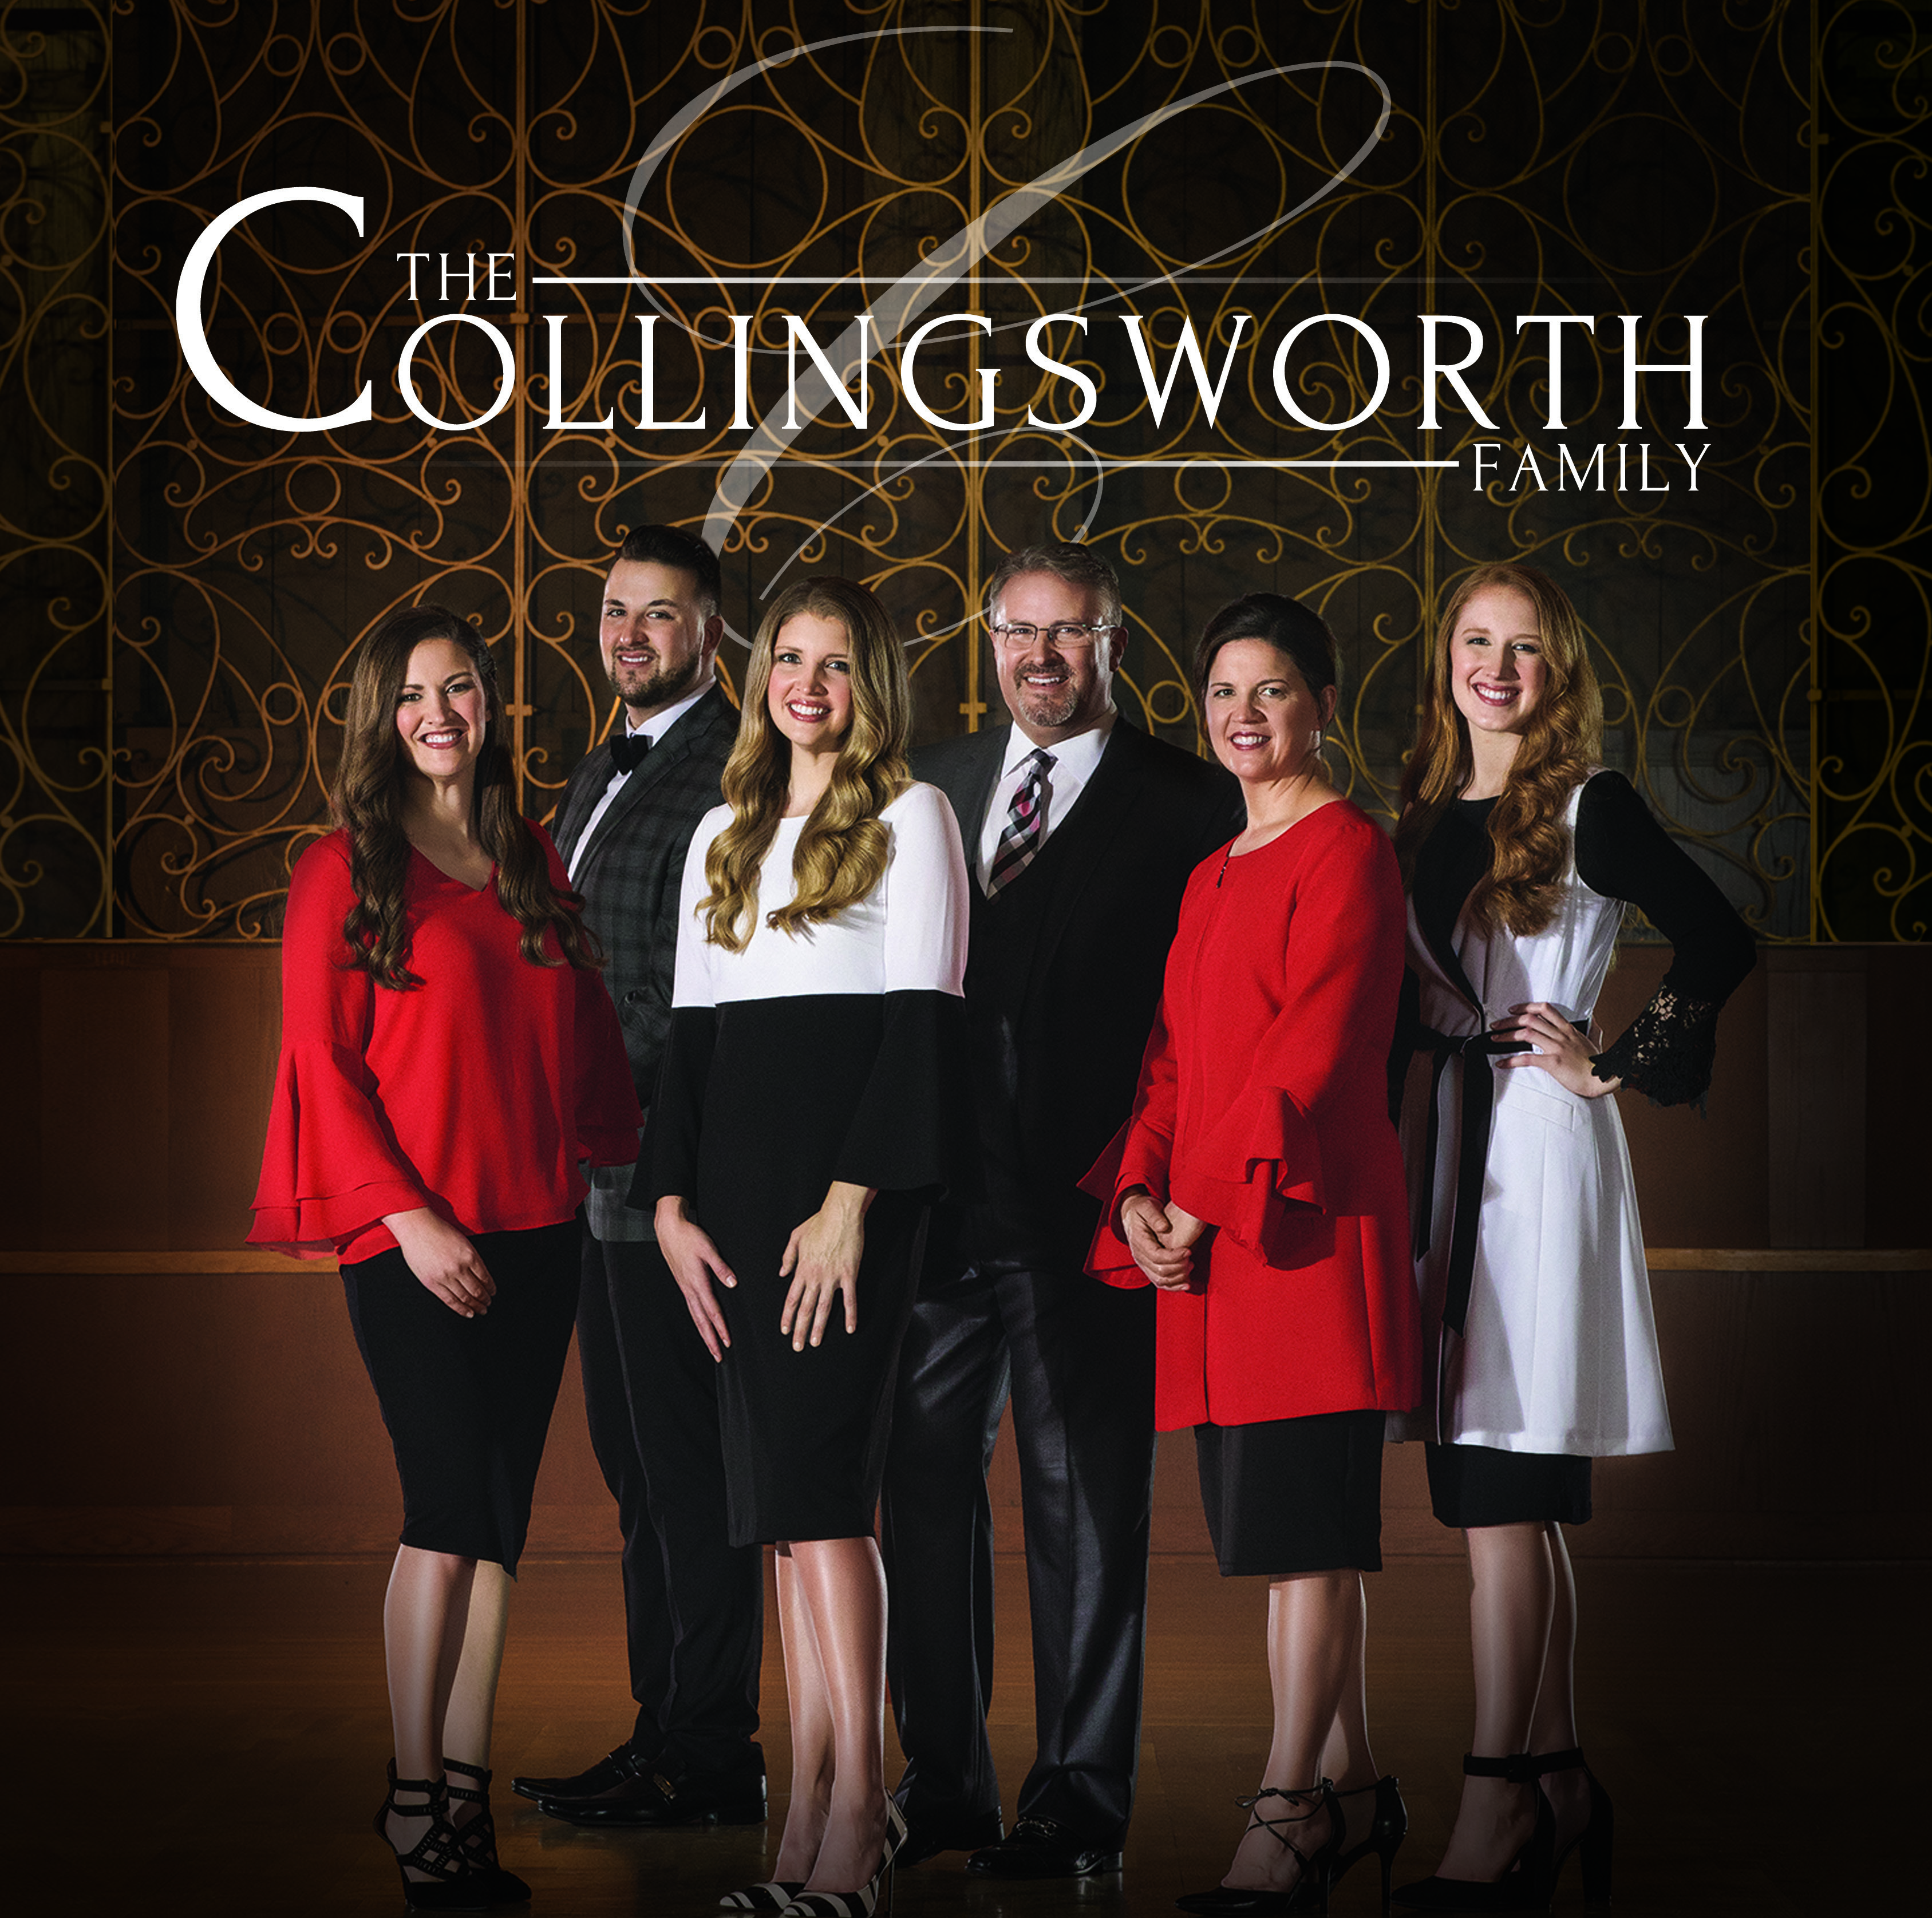 Collingsworth family photo